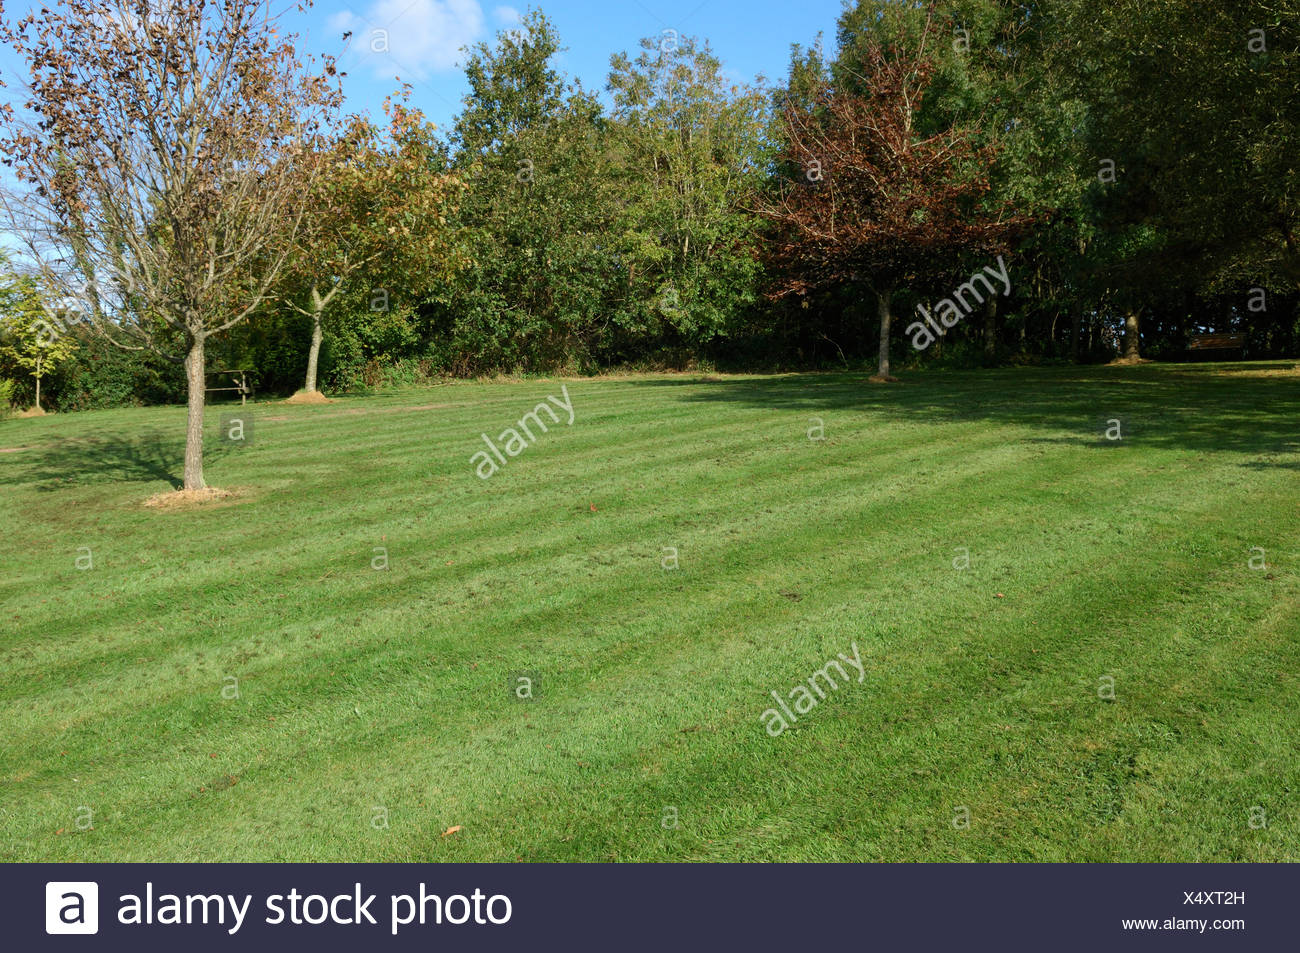 Rough lawn with fine mulch after mowing with a rotary mulching mower in autumn - Stock Image